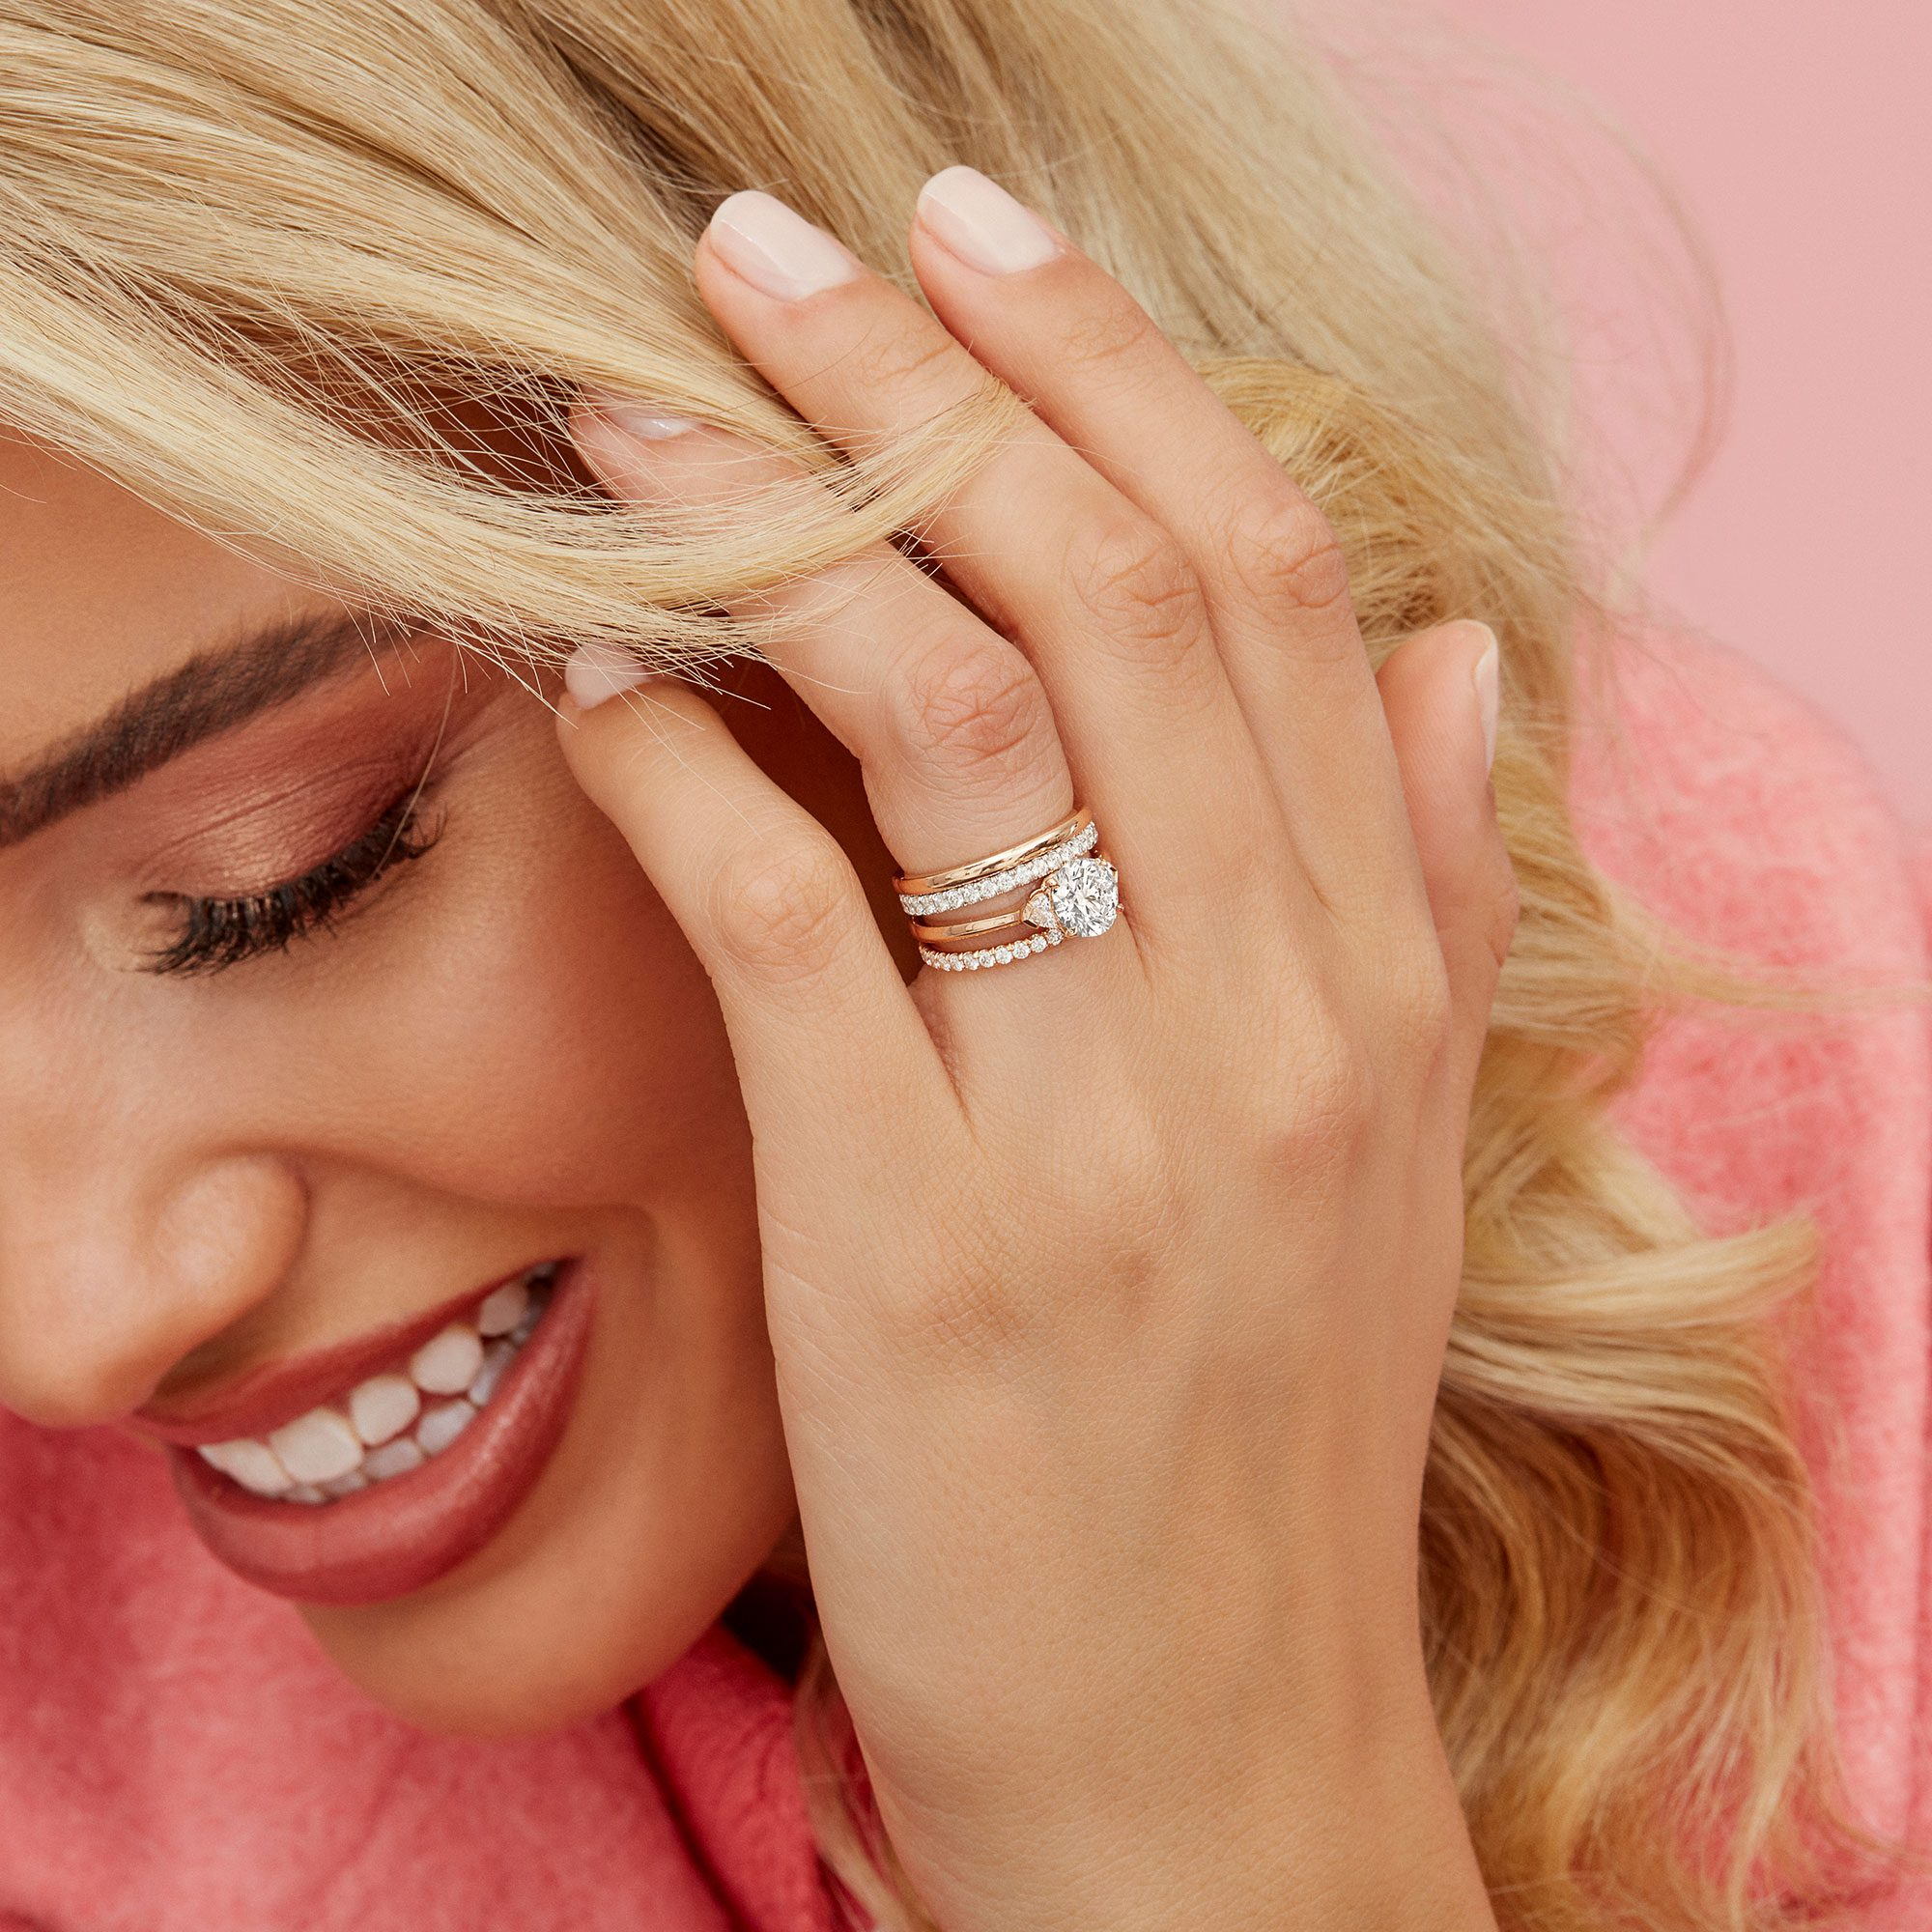 Claire Three Stone Lab Grown Round Diamond Rose Gold Engagement Ring on Hand from Oui